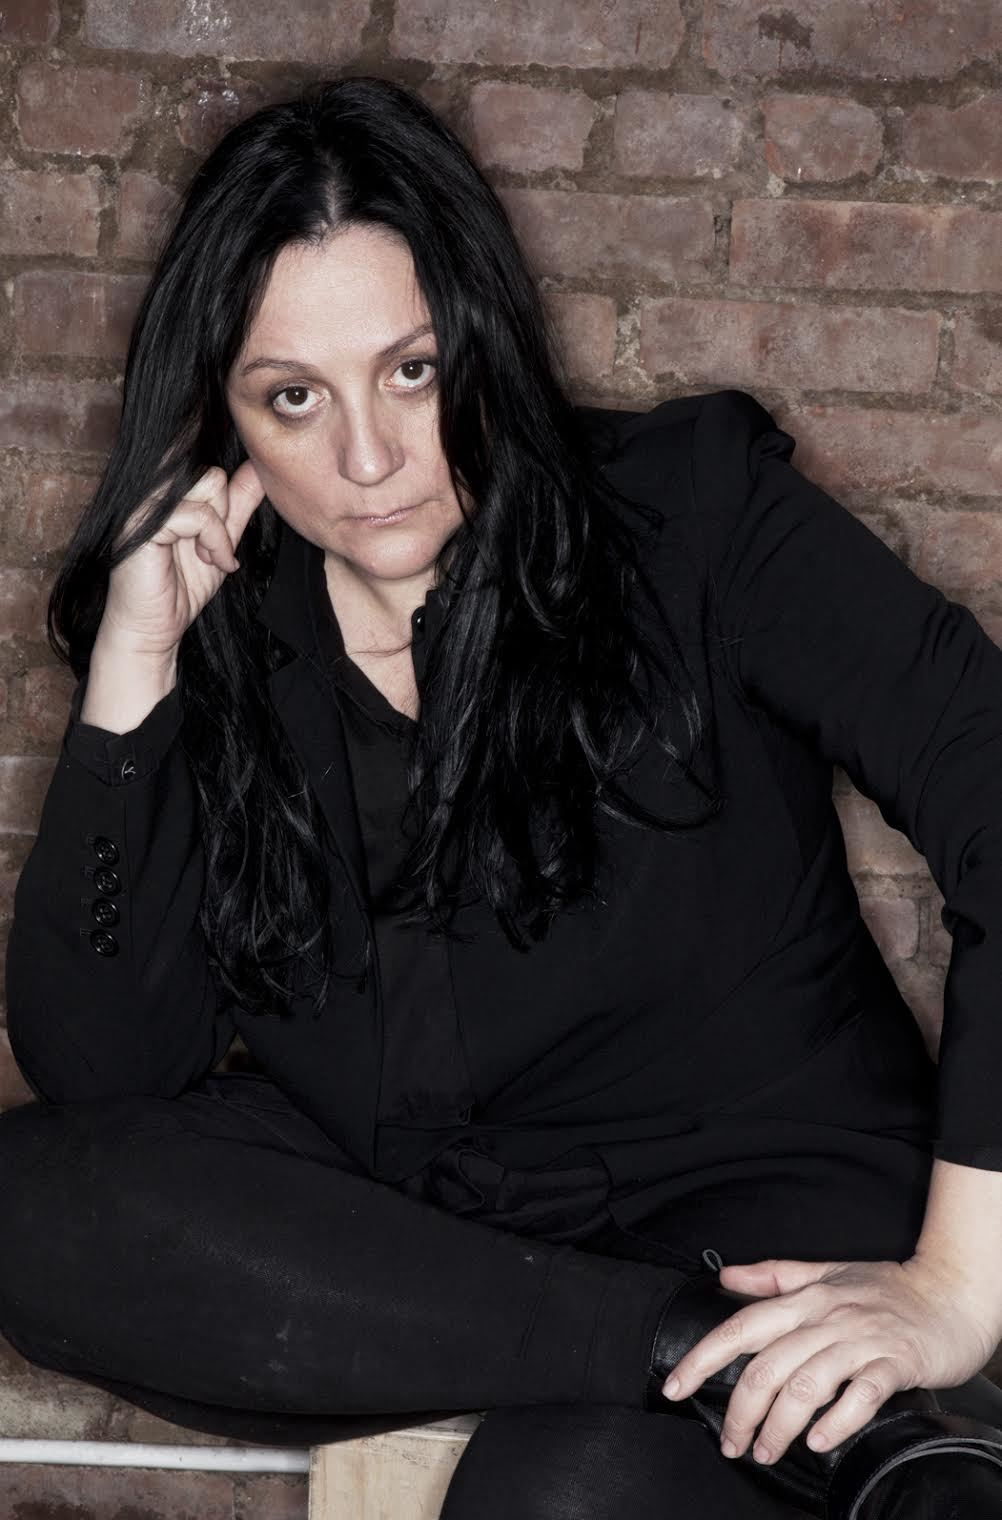 Kelly cutrone fashion week 67